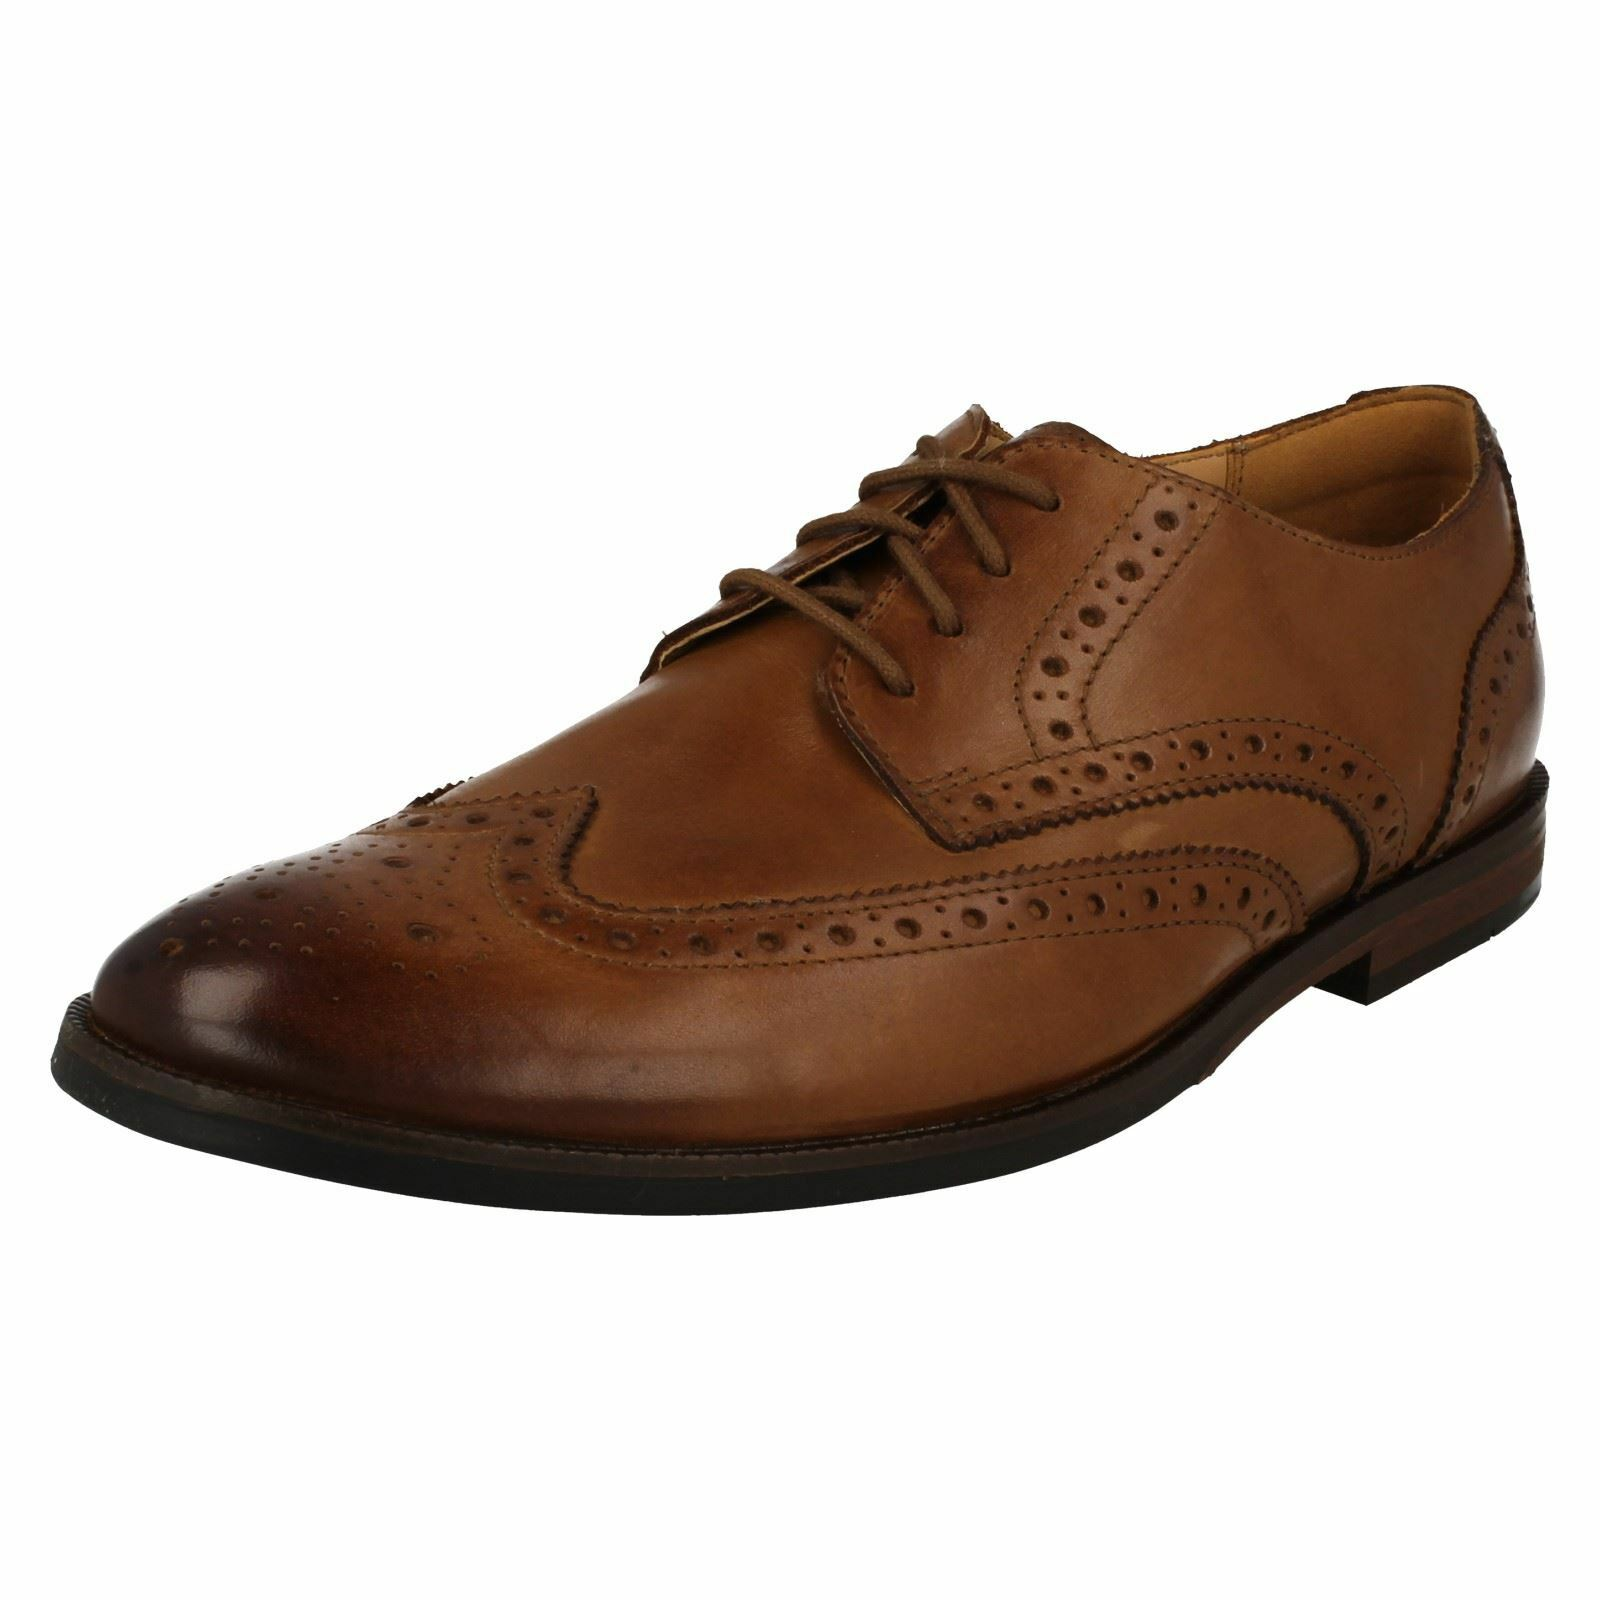 Mens Clarks Lace Up Brogue schuhe Broyd Limit